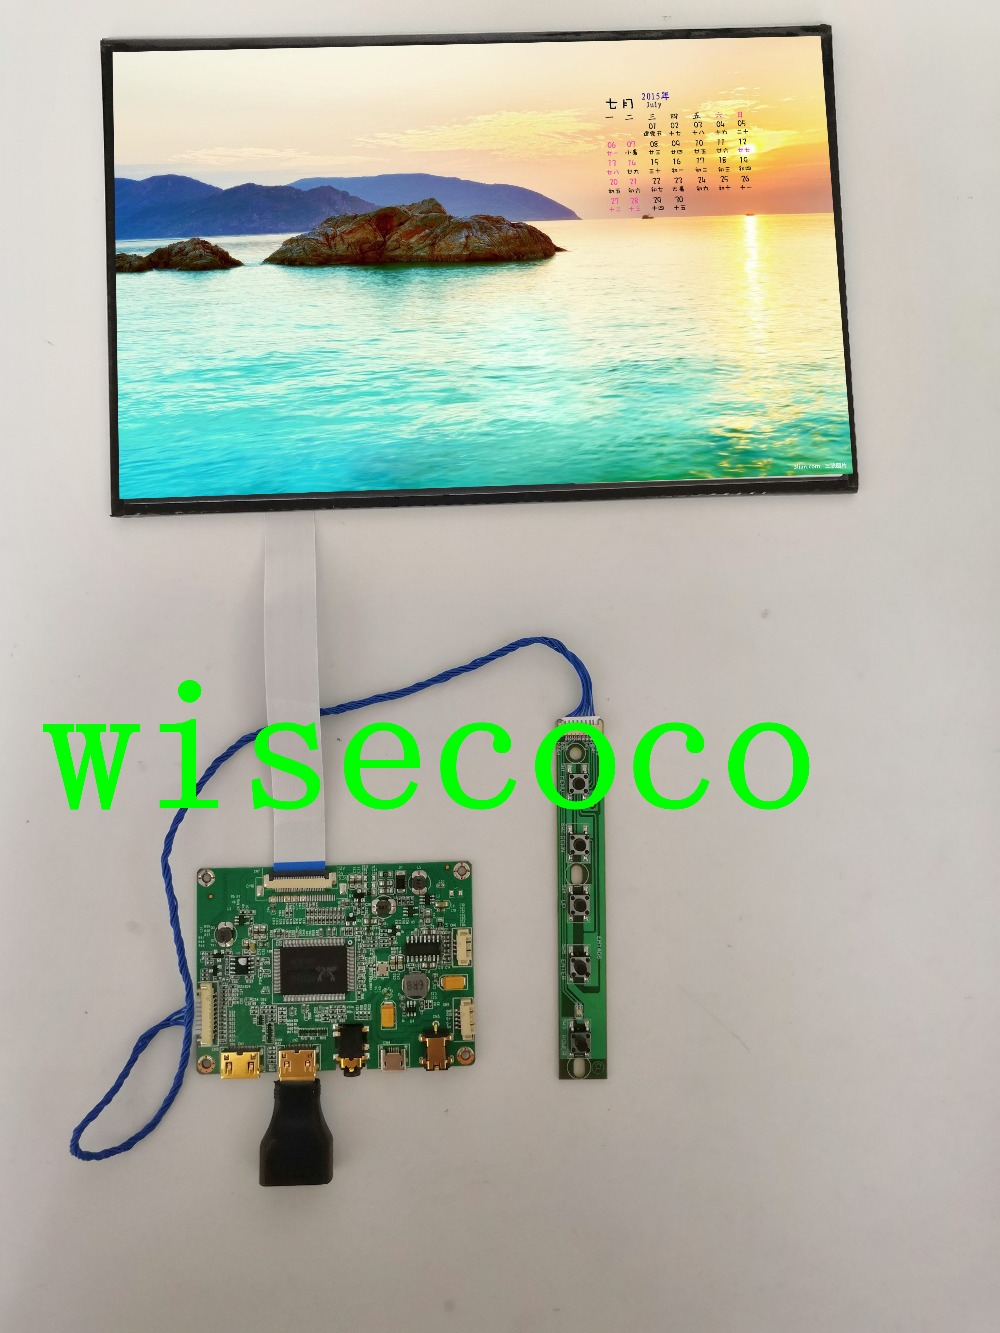 for Raspberry Pi \ Orange Pi \ Tablet PC 10.1 Inch 1920*1200 TFT LCD Independent Display Screen+LVDS HDMI Drive Boardfor Raspberry Pi \ Orange Pi \ Tablet PC 10.1 Inch 1920*1200 TFT LCD Independent Display Screen+LVDS HDMI Drive Board